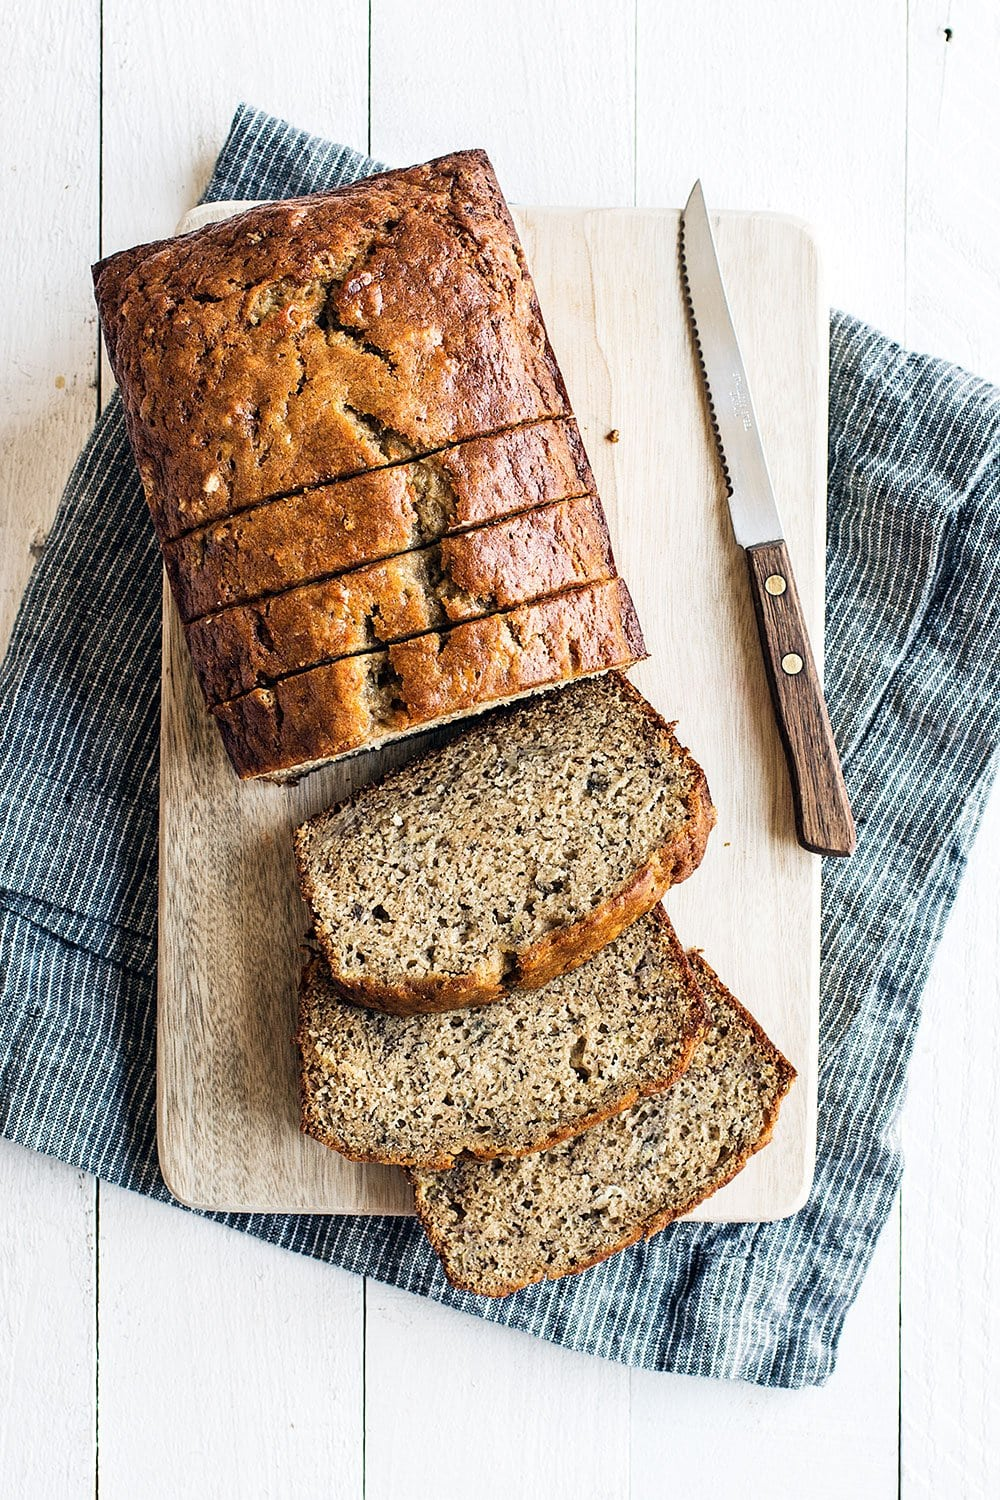 Simple and easy foolproof banana bread recipe - feel free to add nuts or chocolate chips!